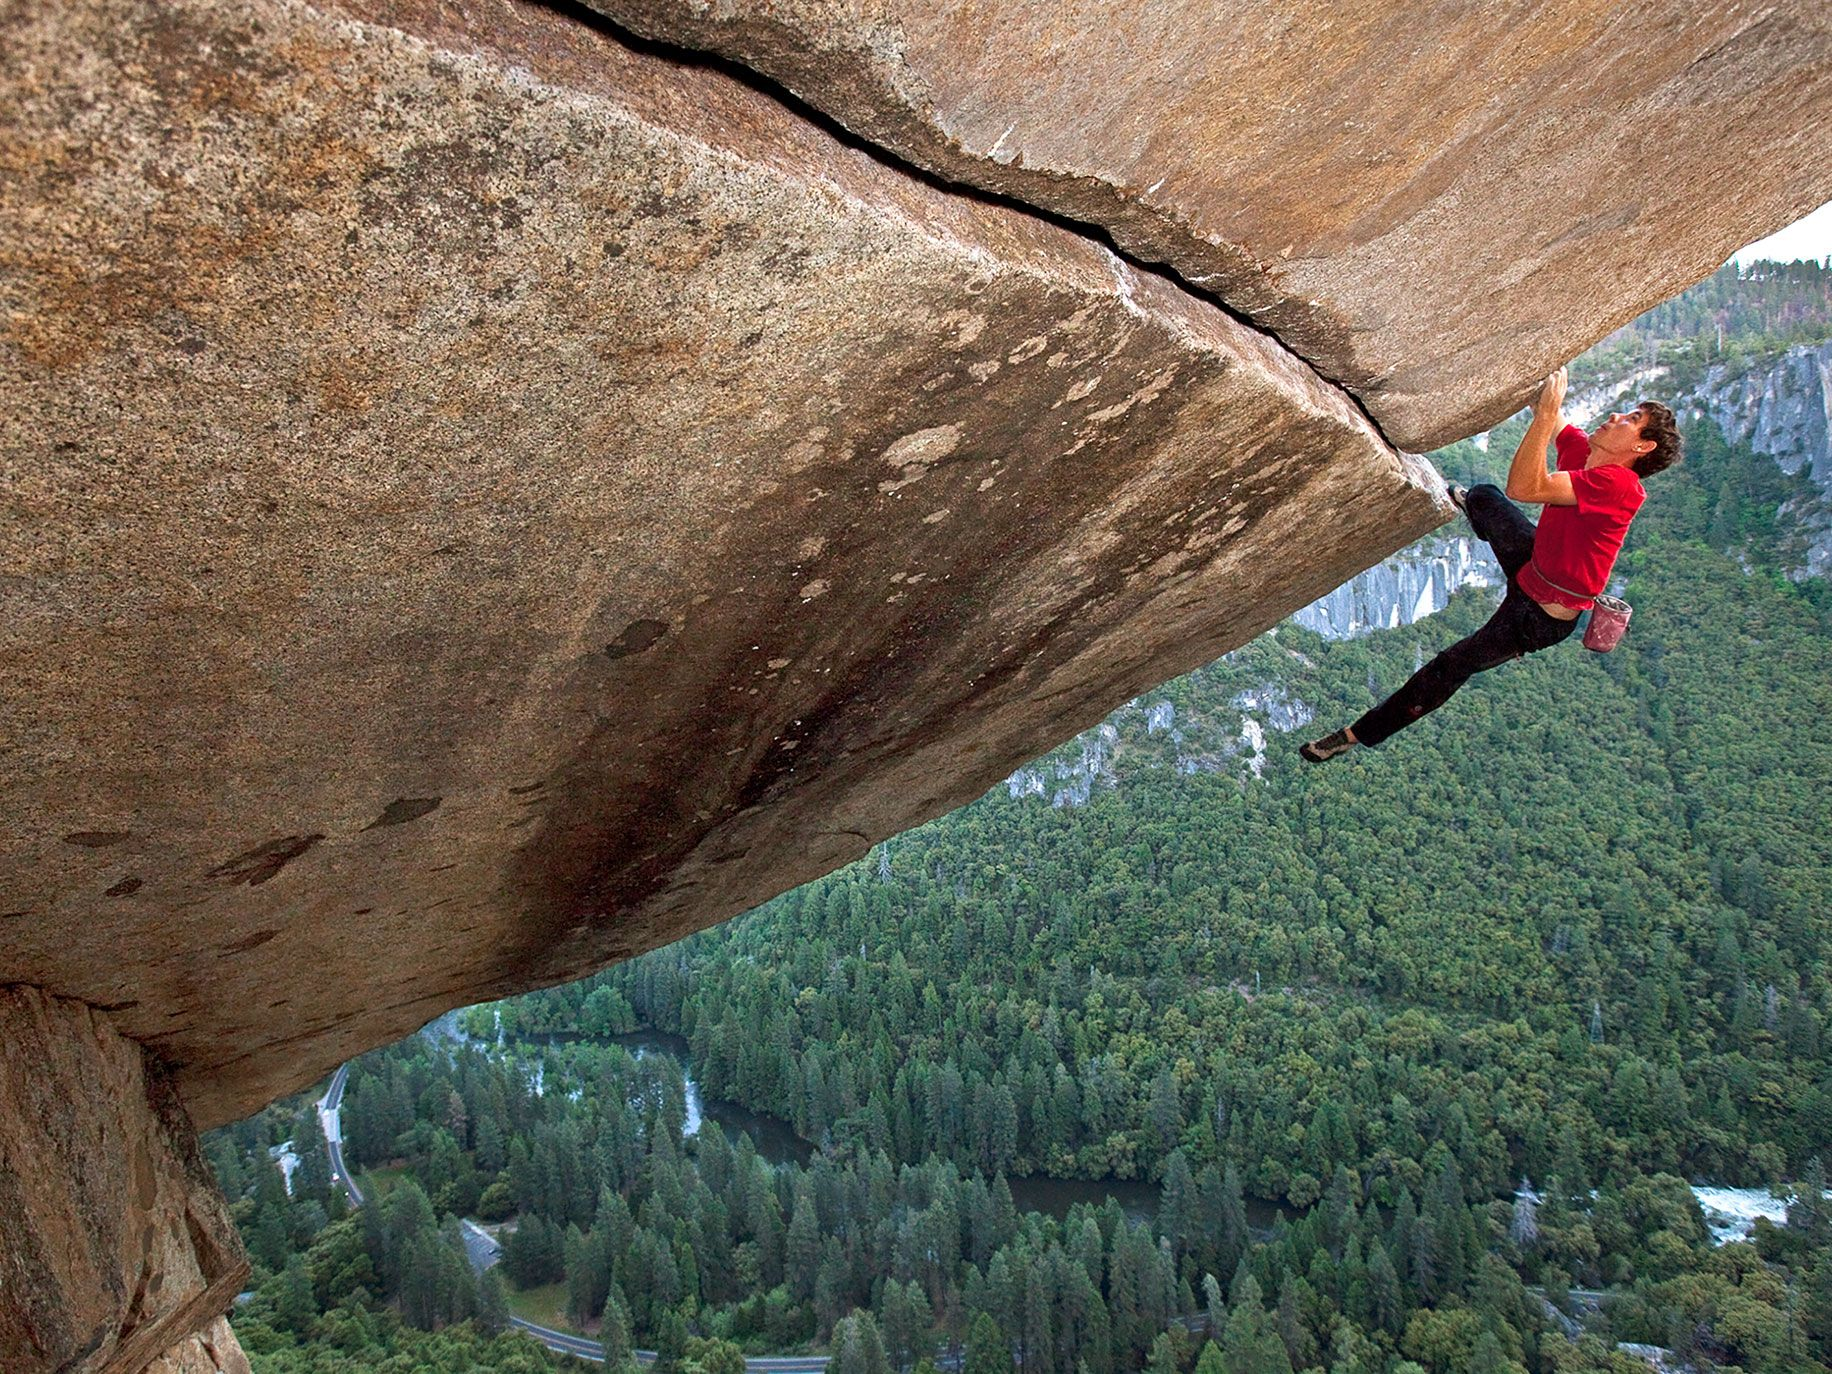 Alex Honnold making a ropeless ascent of the famous Separate Reality, a difficult overhanging formation 500 feet above the floor of the Yosemite Valley.